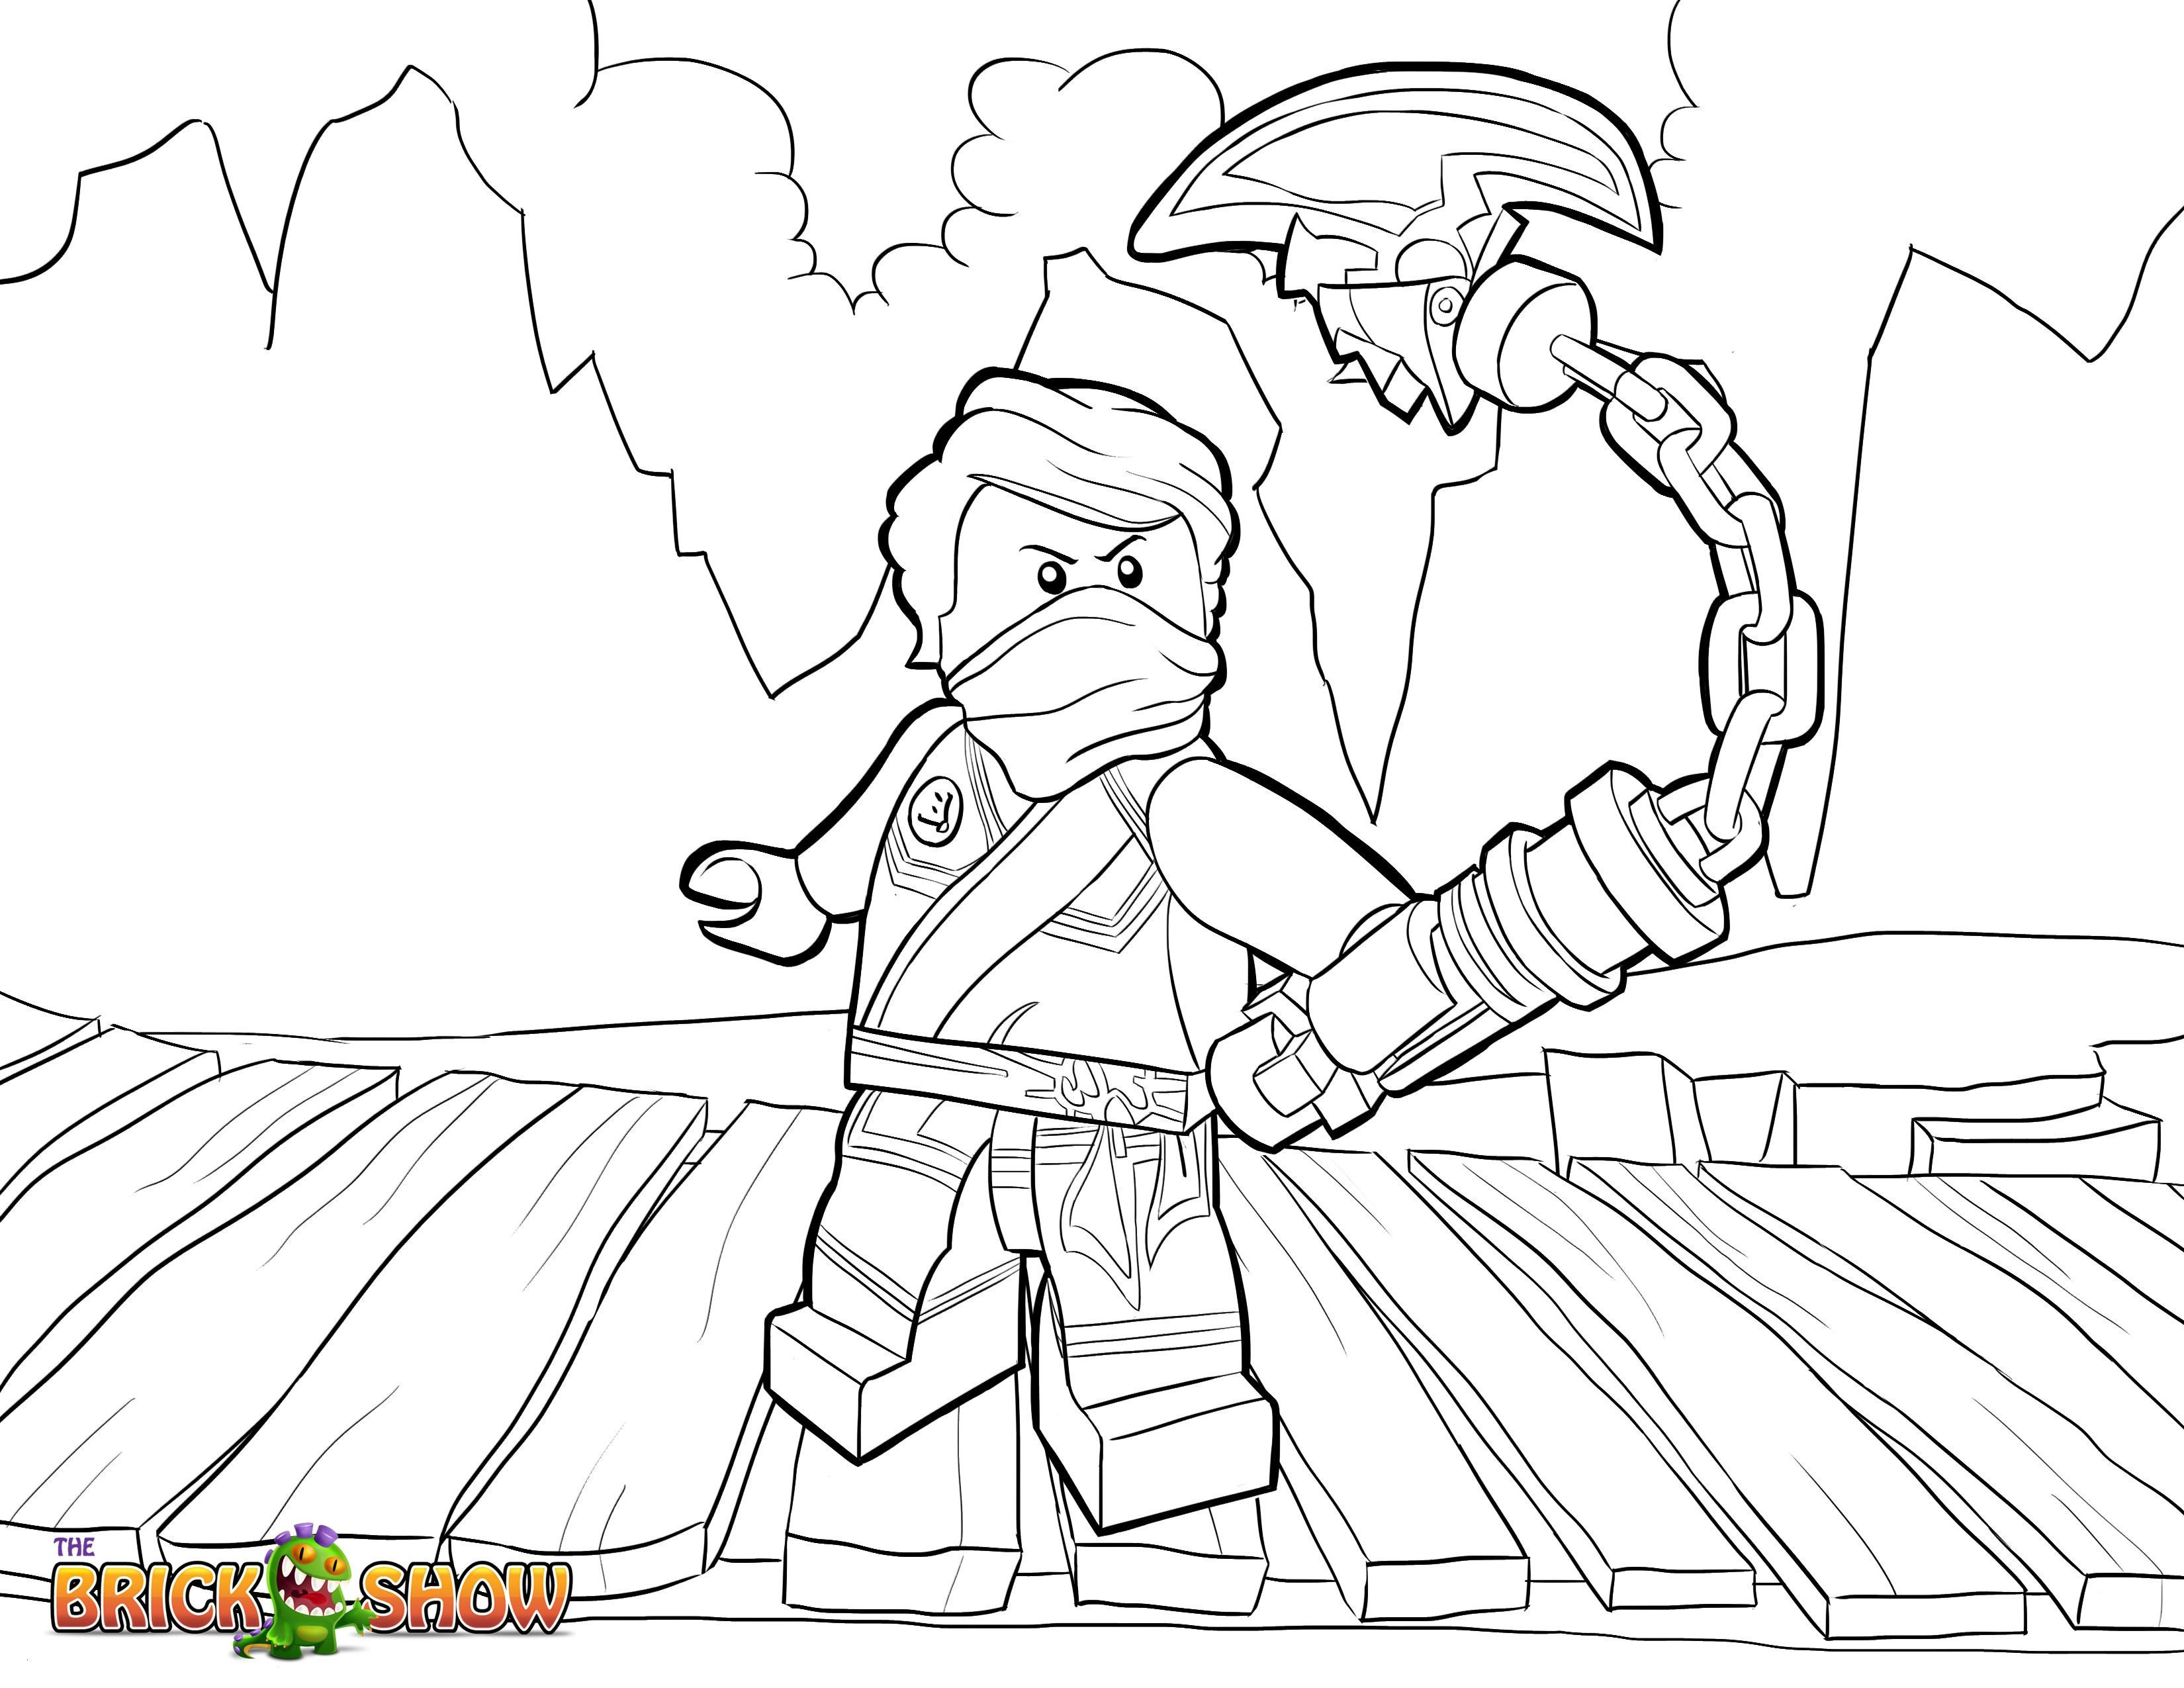 Ritter Rost Ausmalbild Inspirierend Ninjago Lego Coloring Pages 36 New Lego Superheroes Coloring Pages Galerie